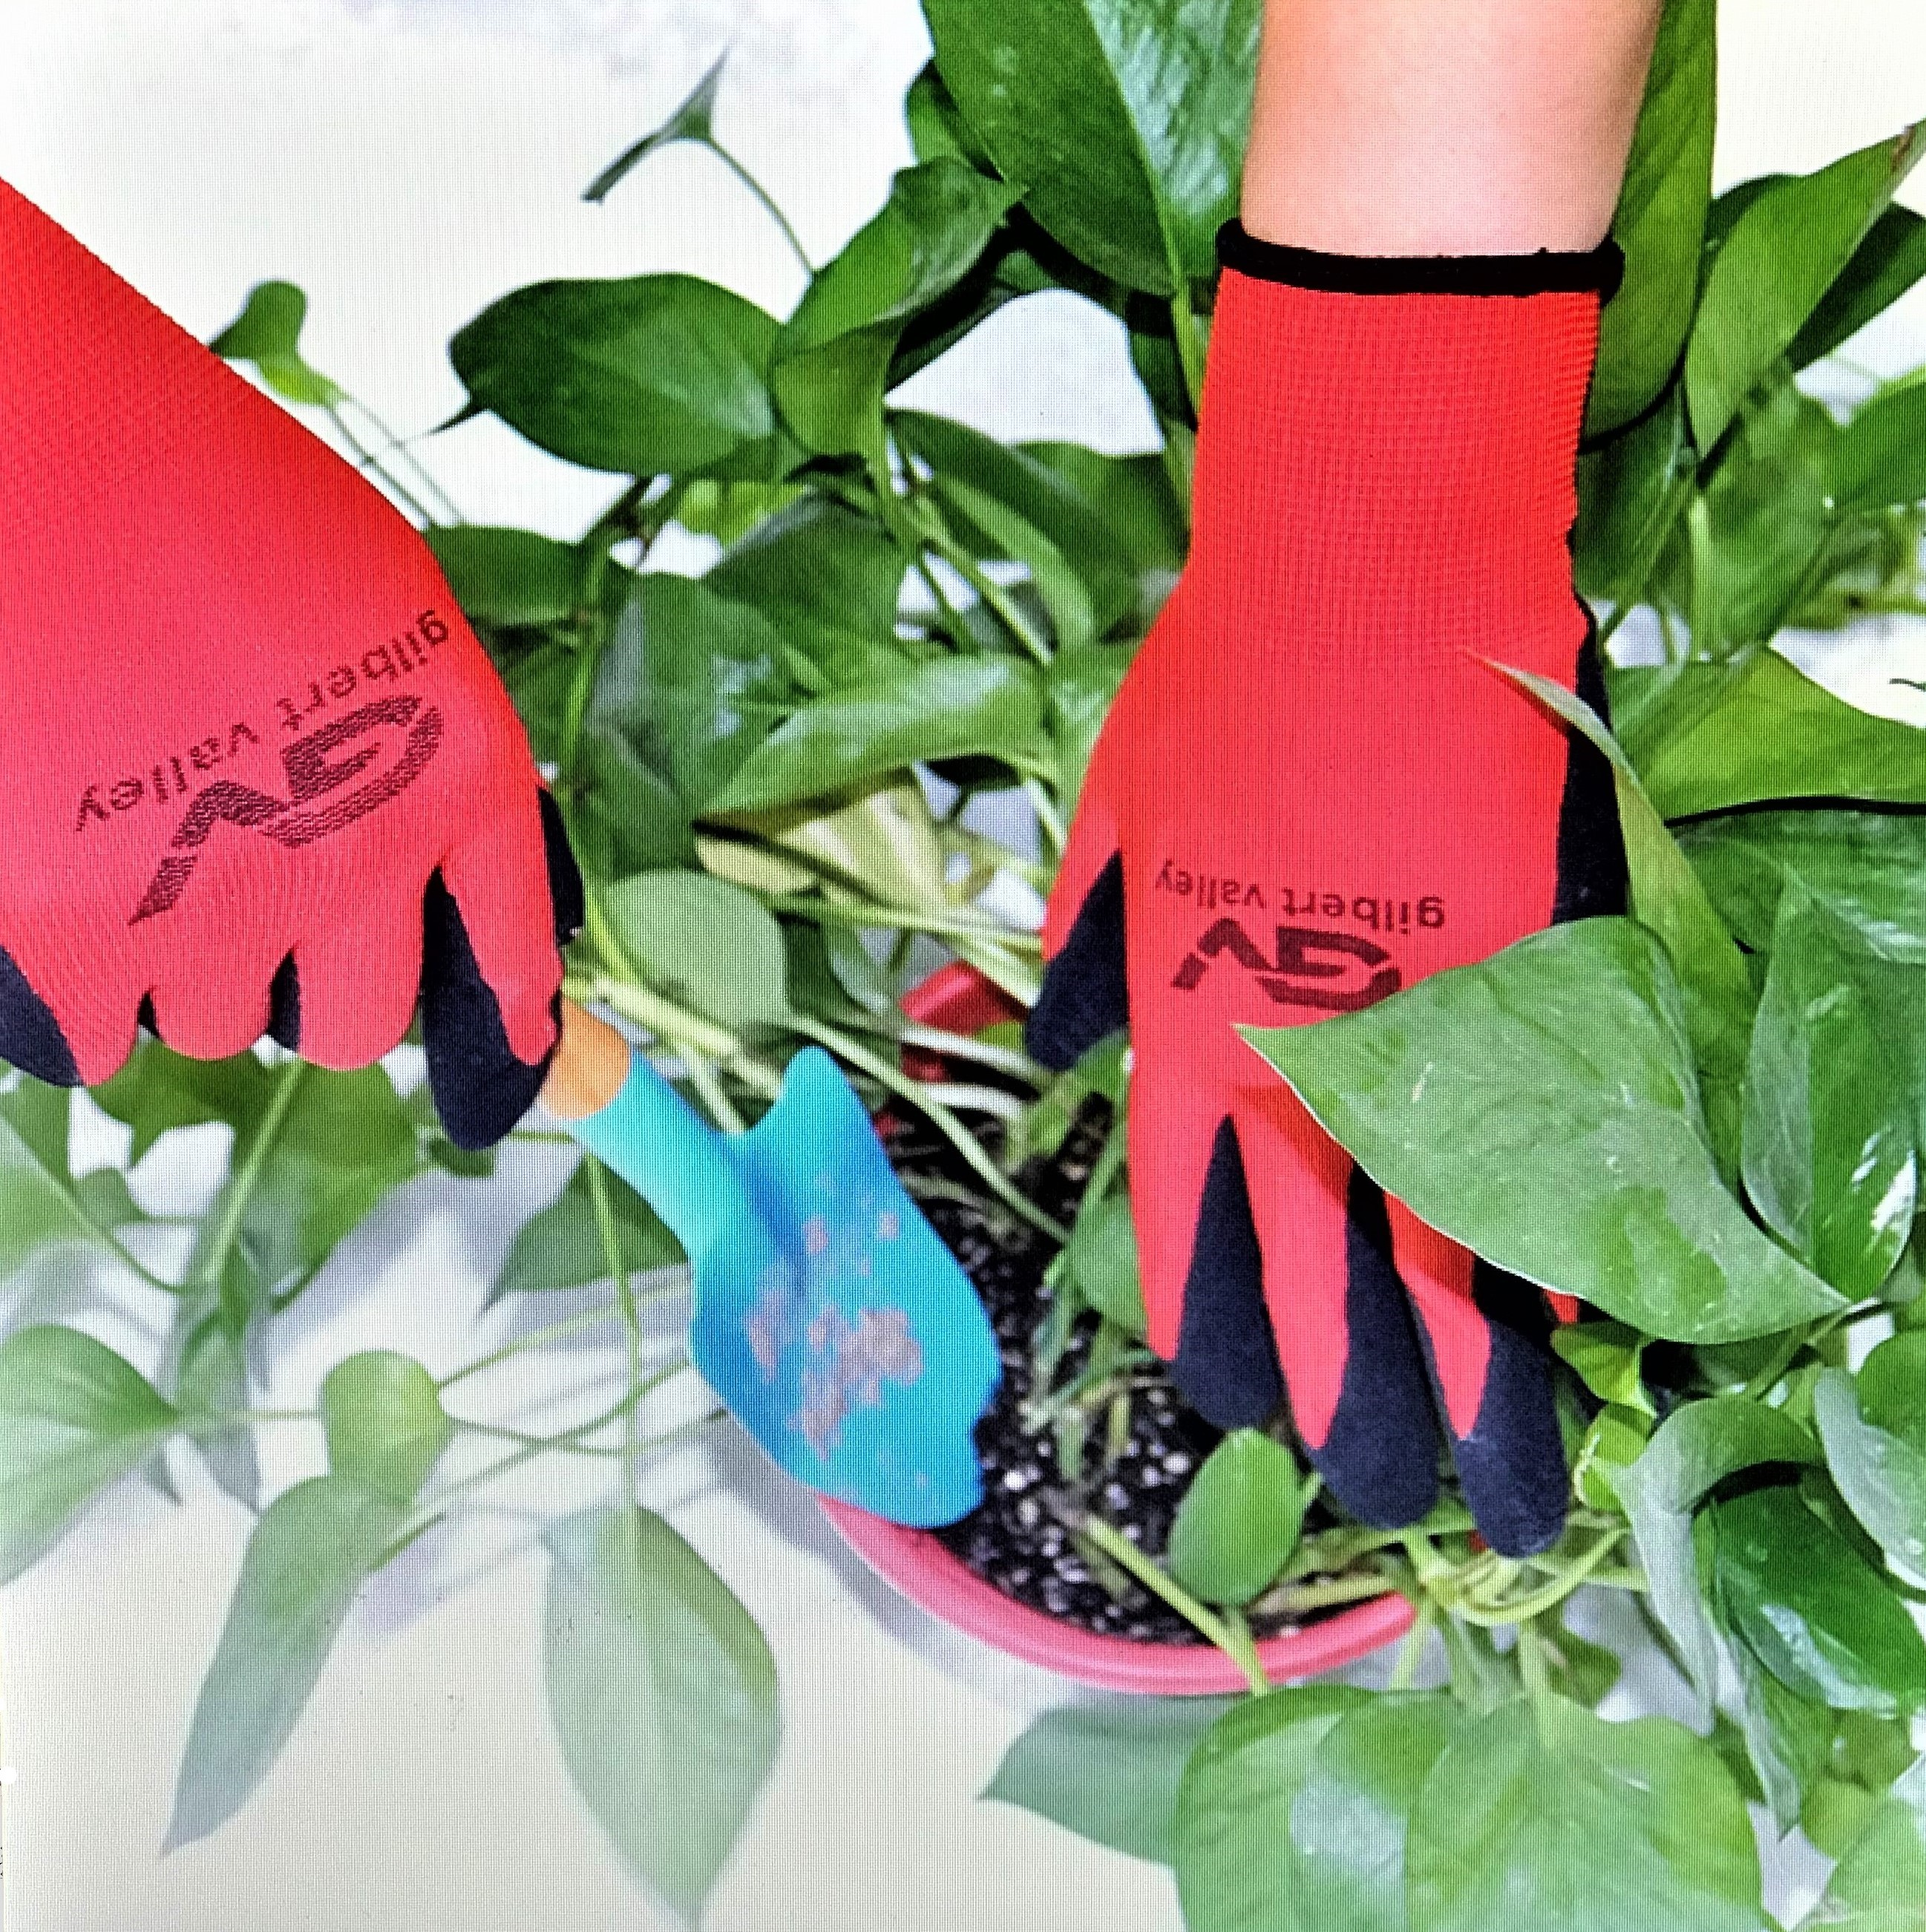 Gardening Work Gloves, Multipurpose for Farming, Ranching, Industrial, Automotive, Construction and More. Sizes S, M, L, XL